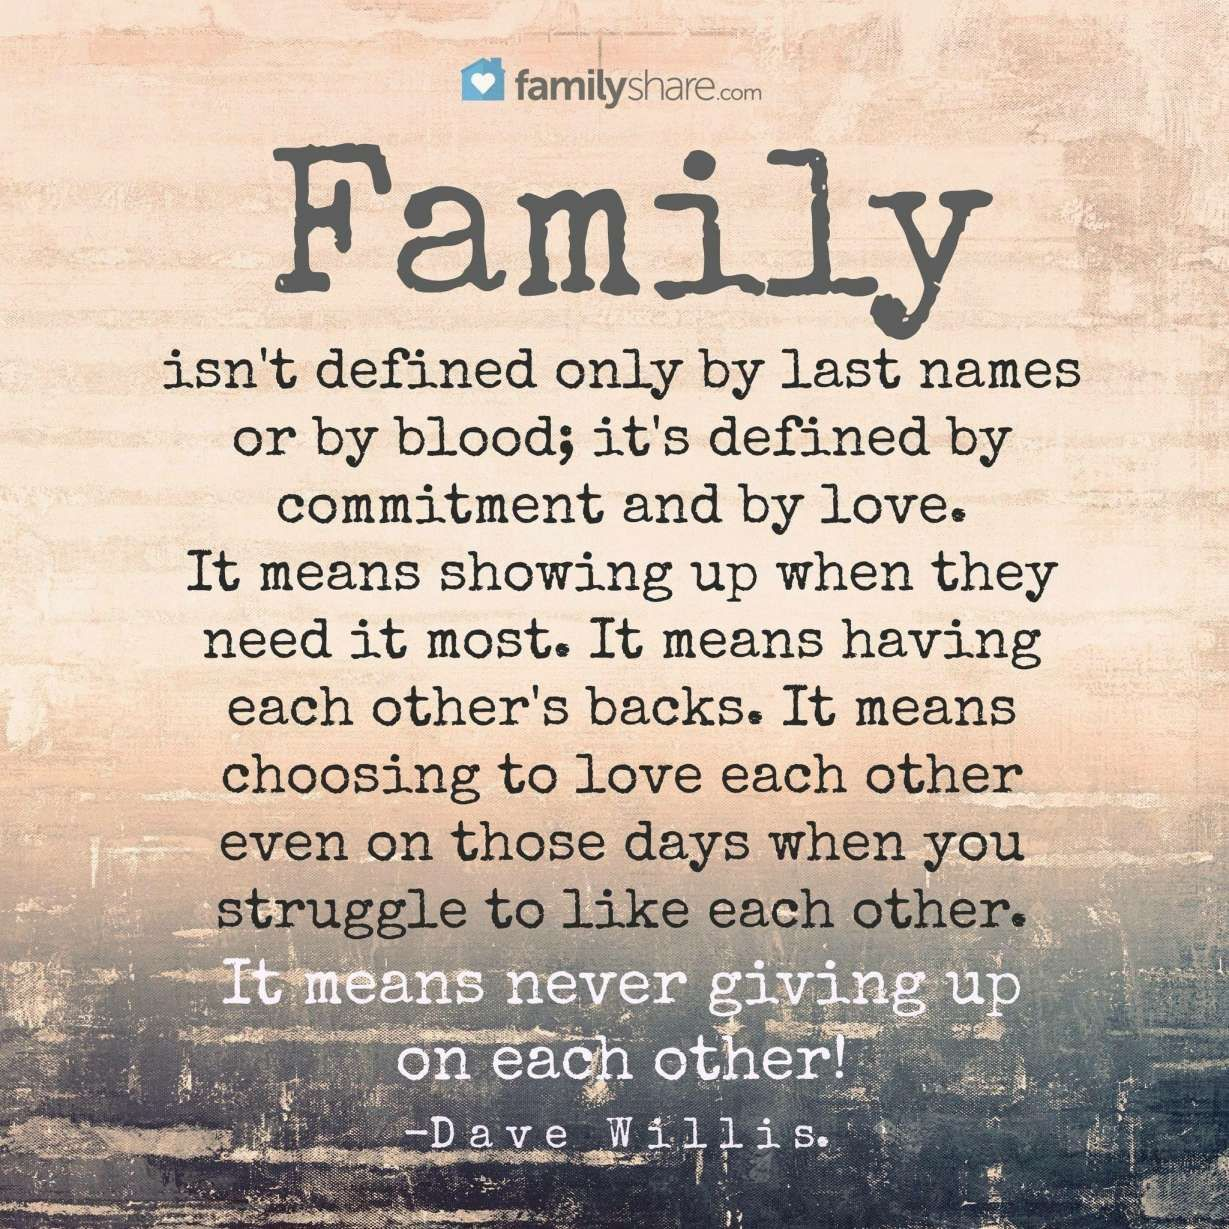 15 Quotes About Being There For Family Family Quote Quoteslife99 Com Family Quotes Inspirational My Family Quotes Family Bonding Quotes